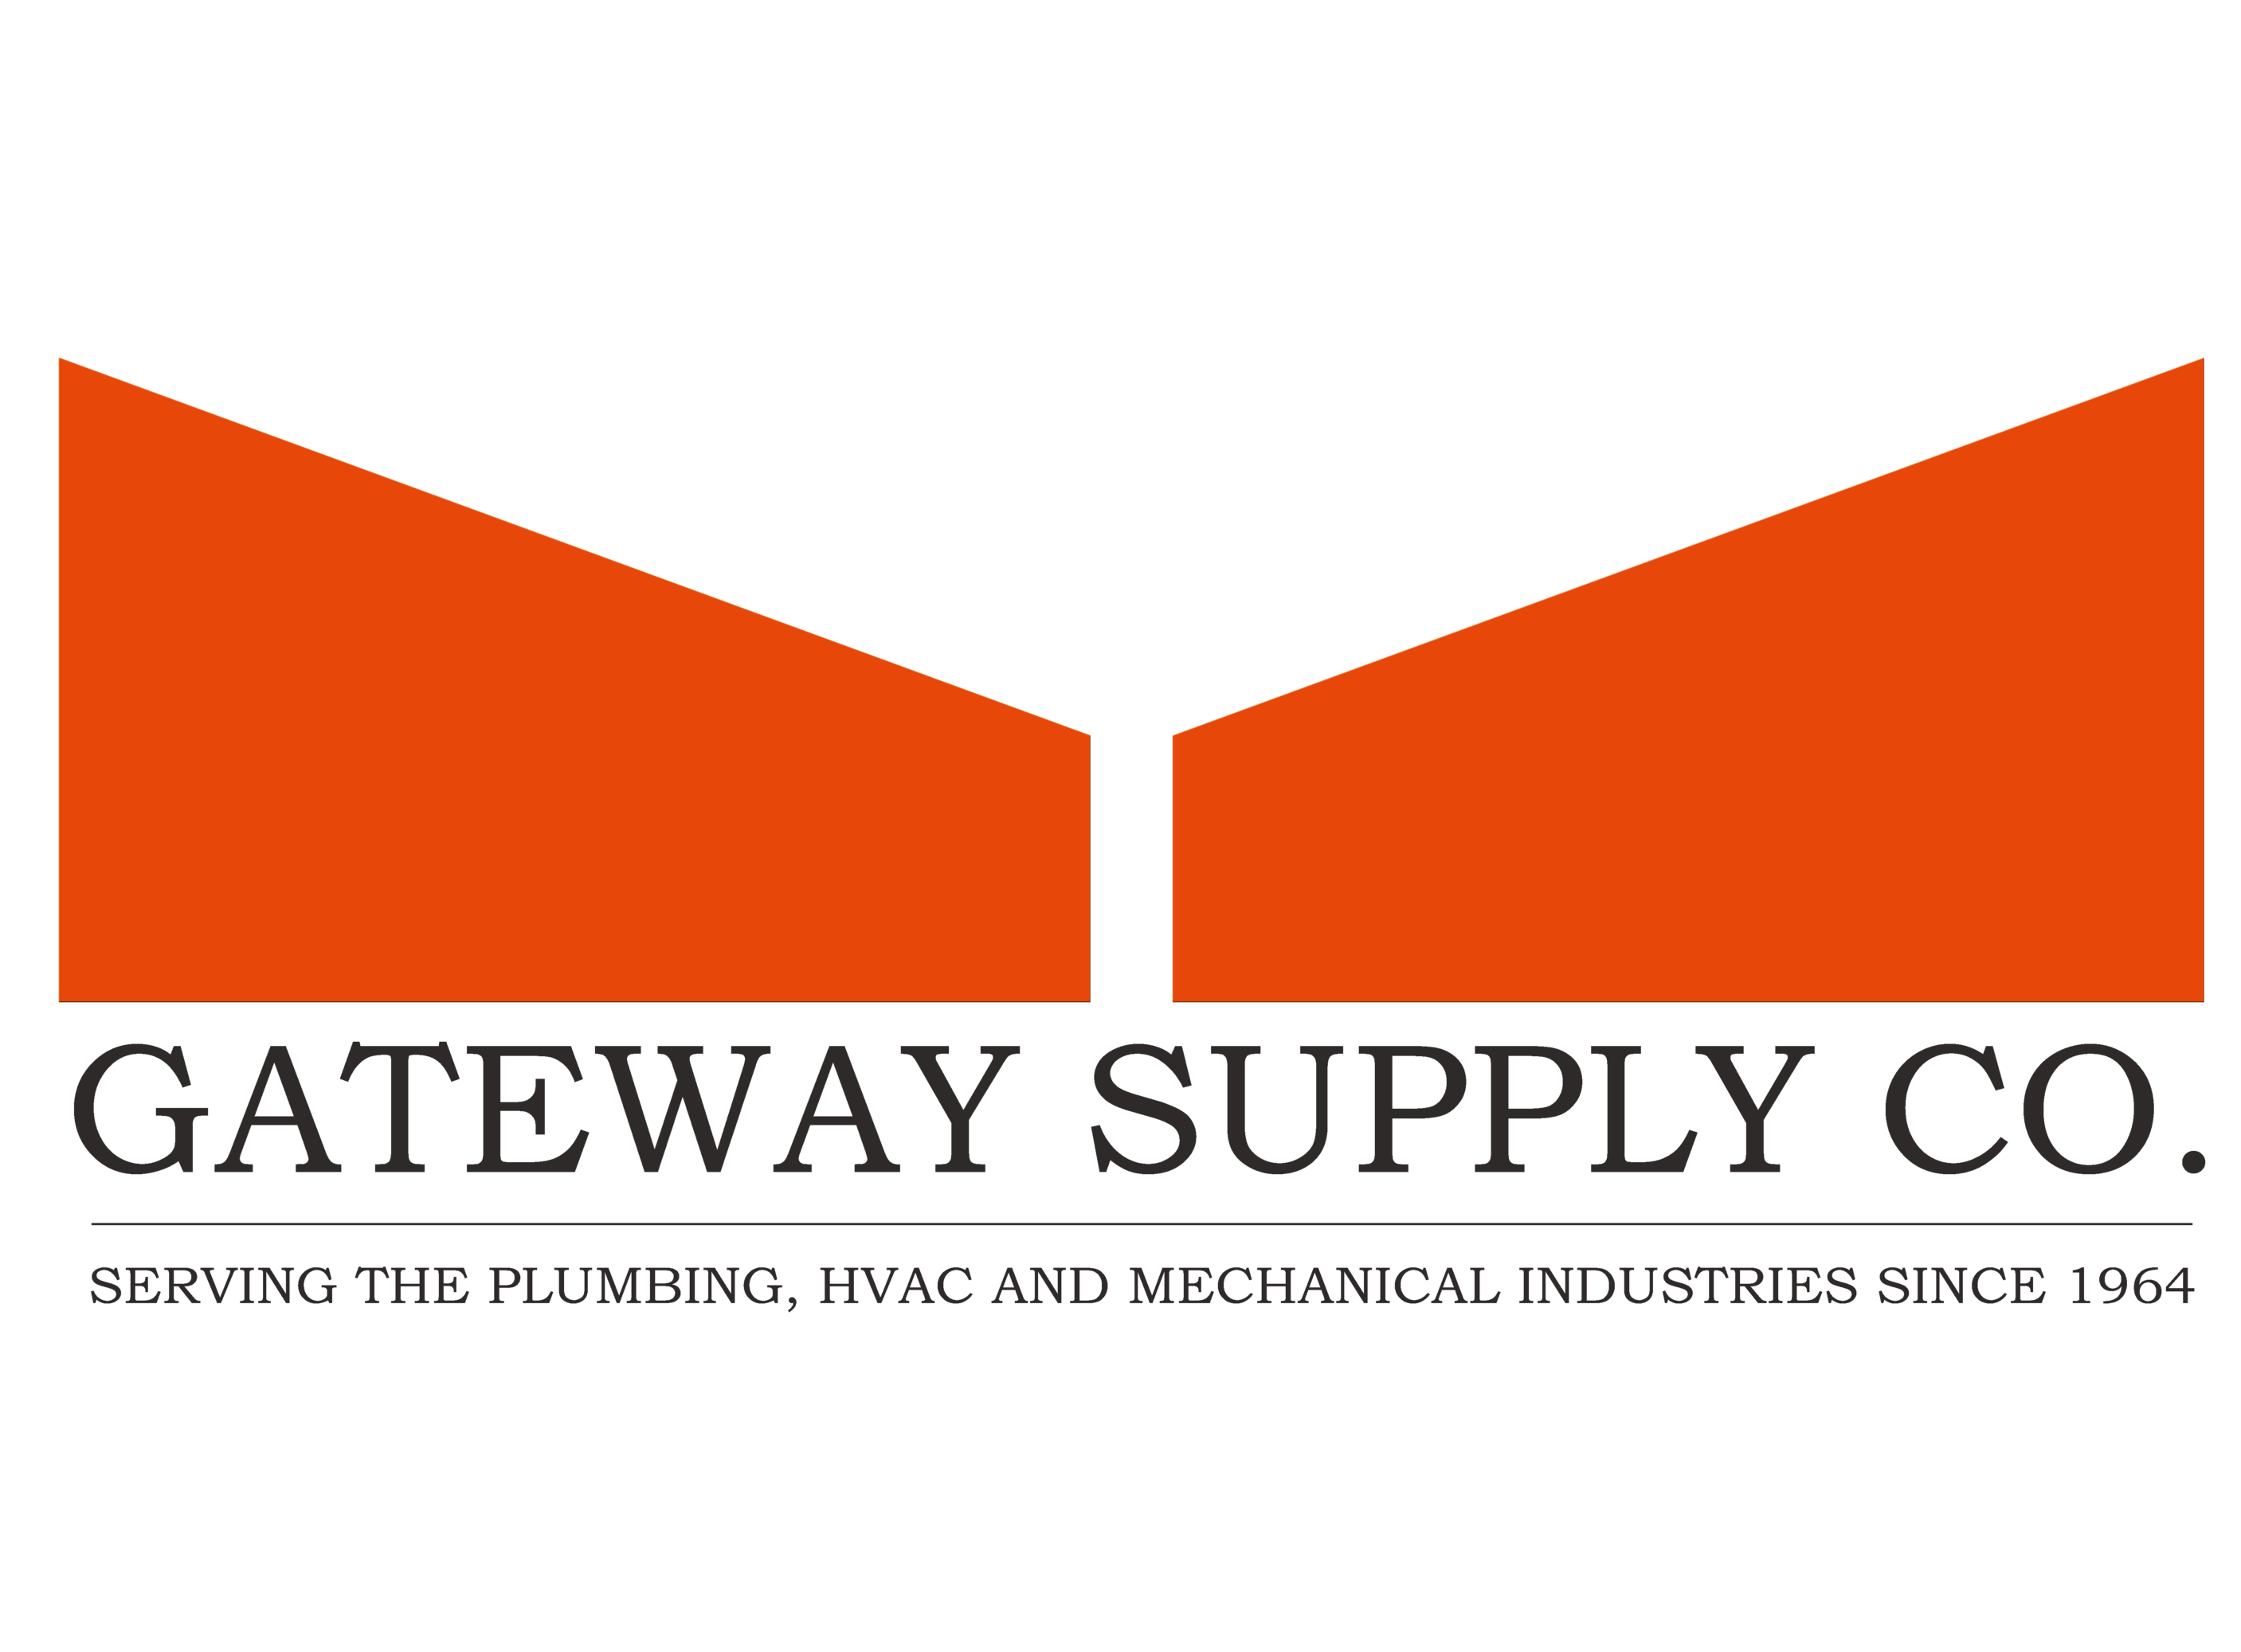 Logo for Gateway Supply Co.